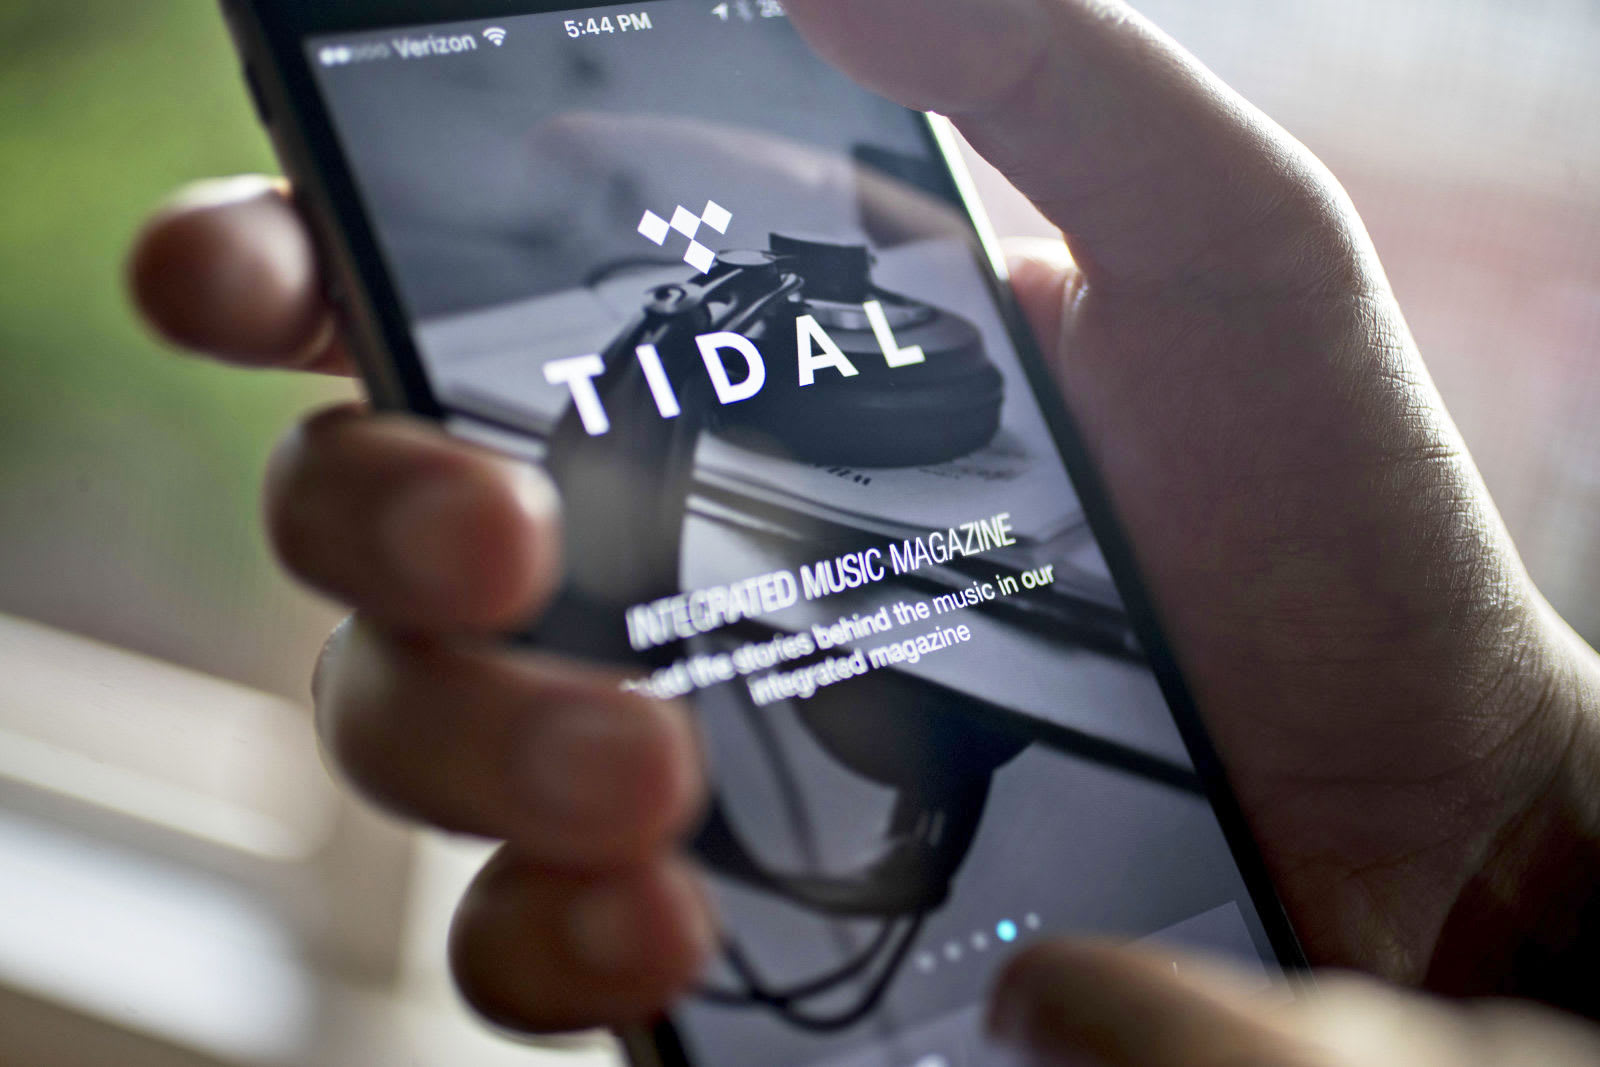 Tidal is the latest music service to add direct control for Sonos